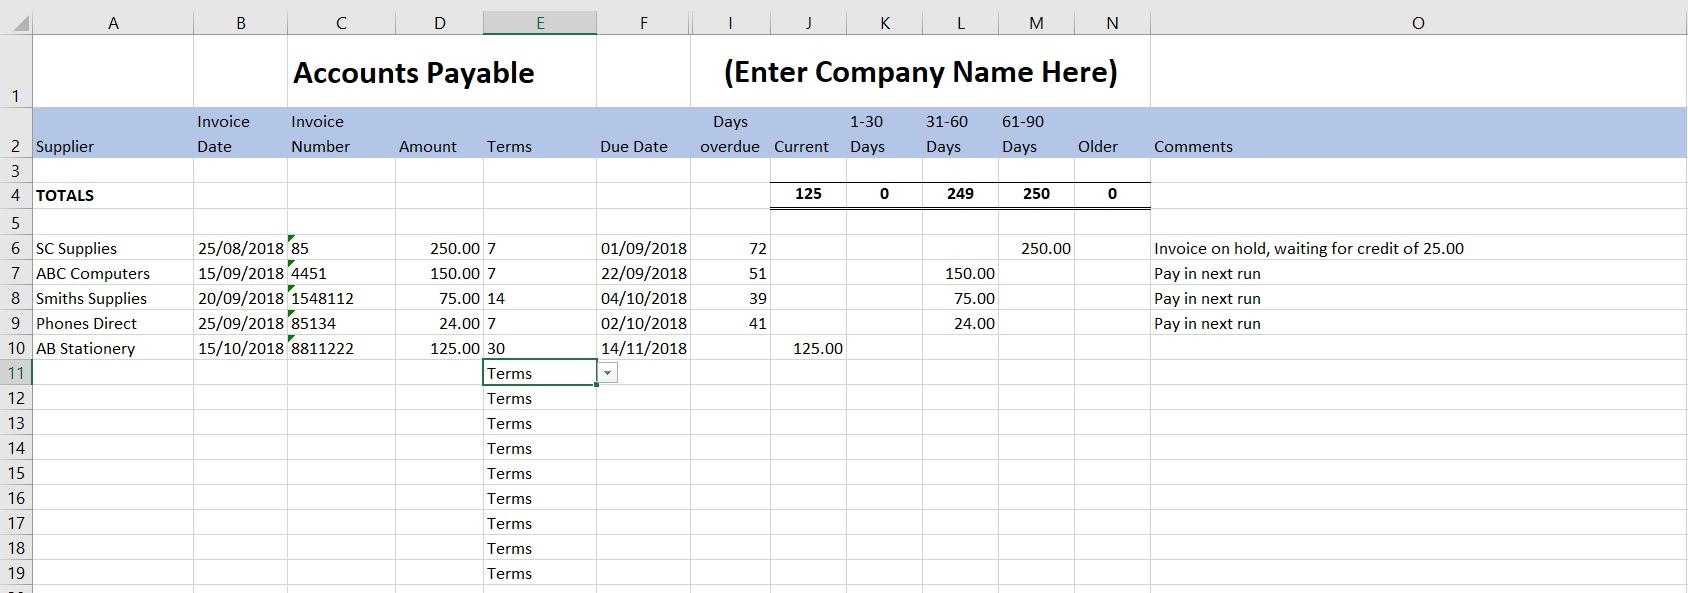 Free Accounting Spreadsheet Templates For Small Business Excel Uk Regarding Accounting Spreadsheet Templates For Small Business